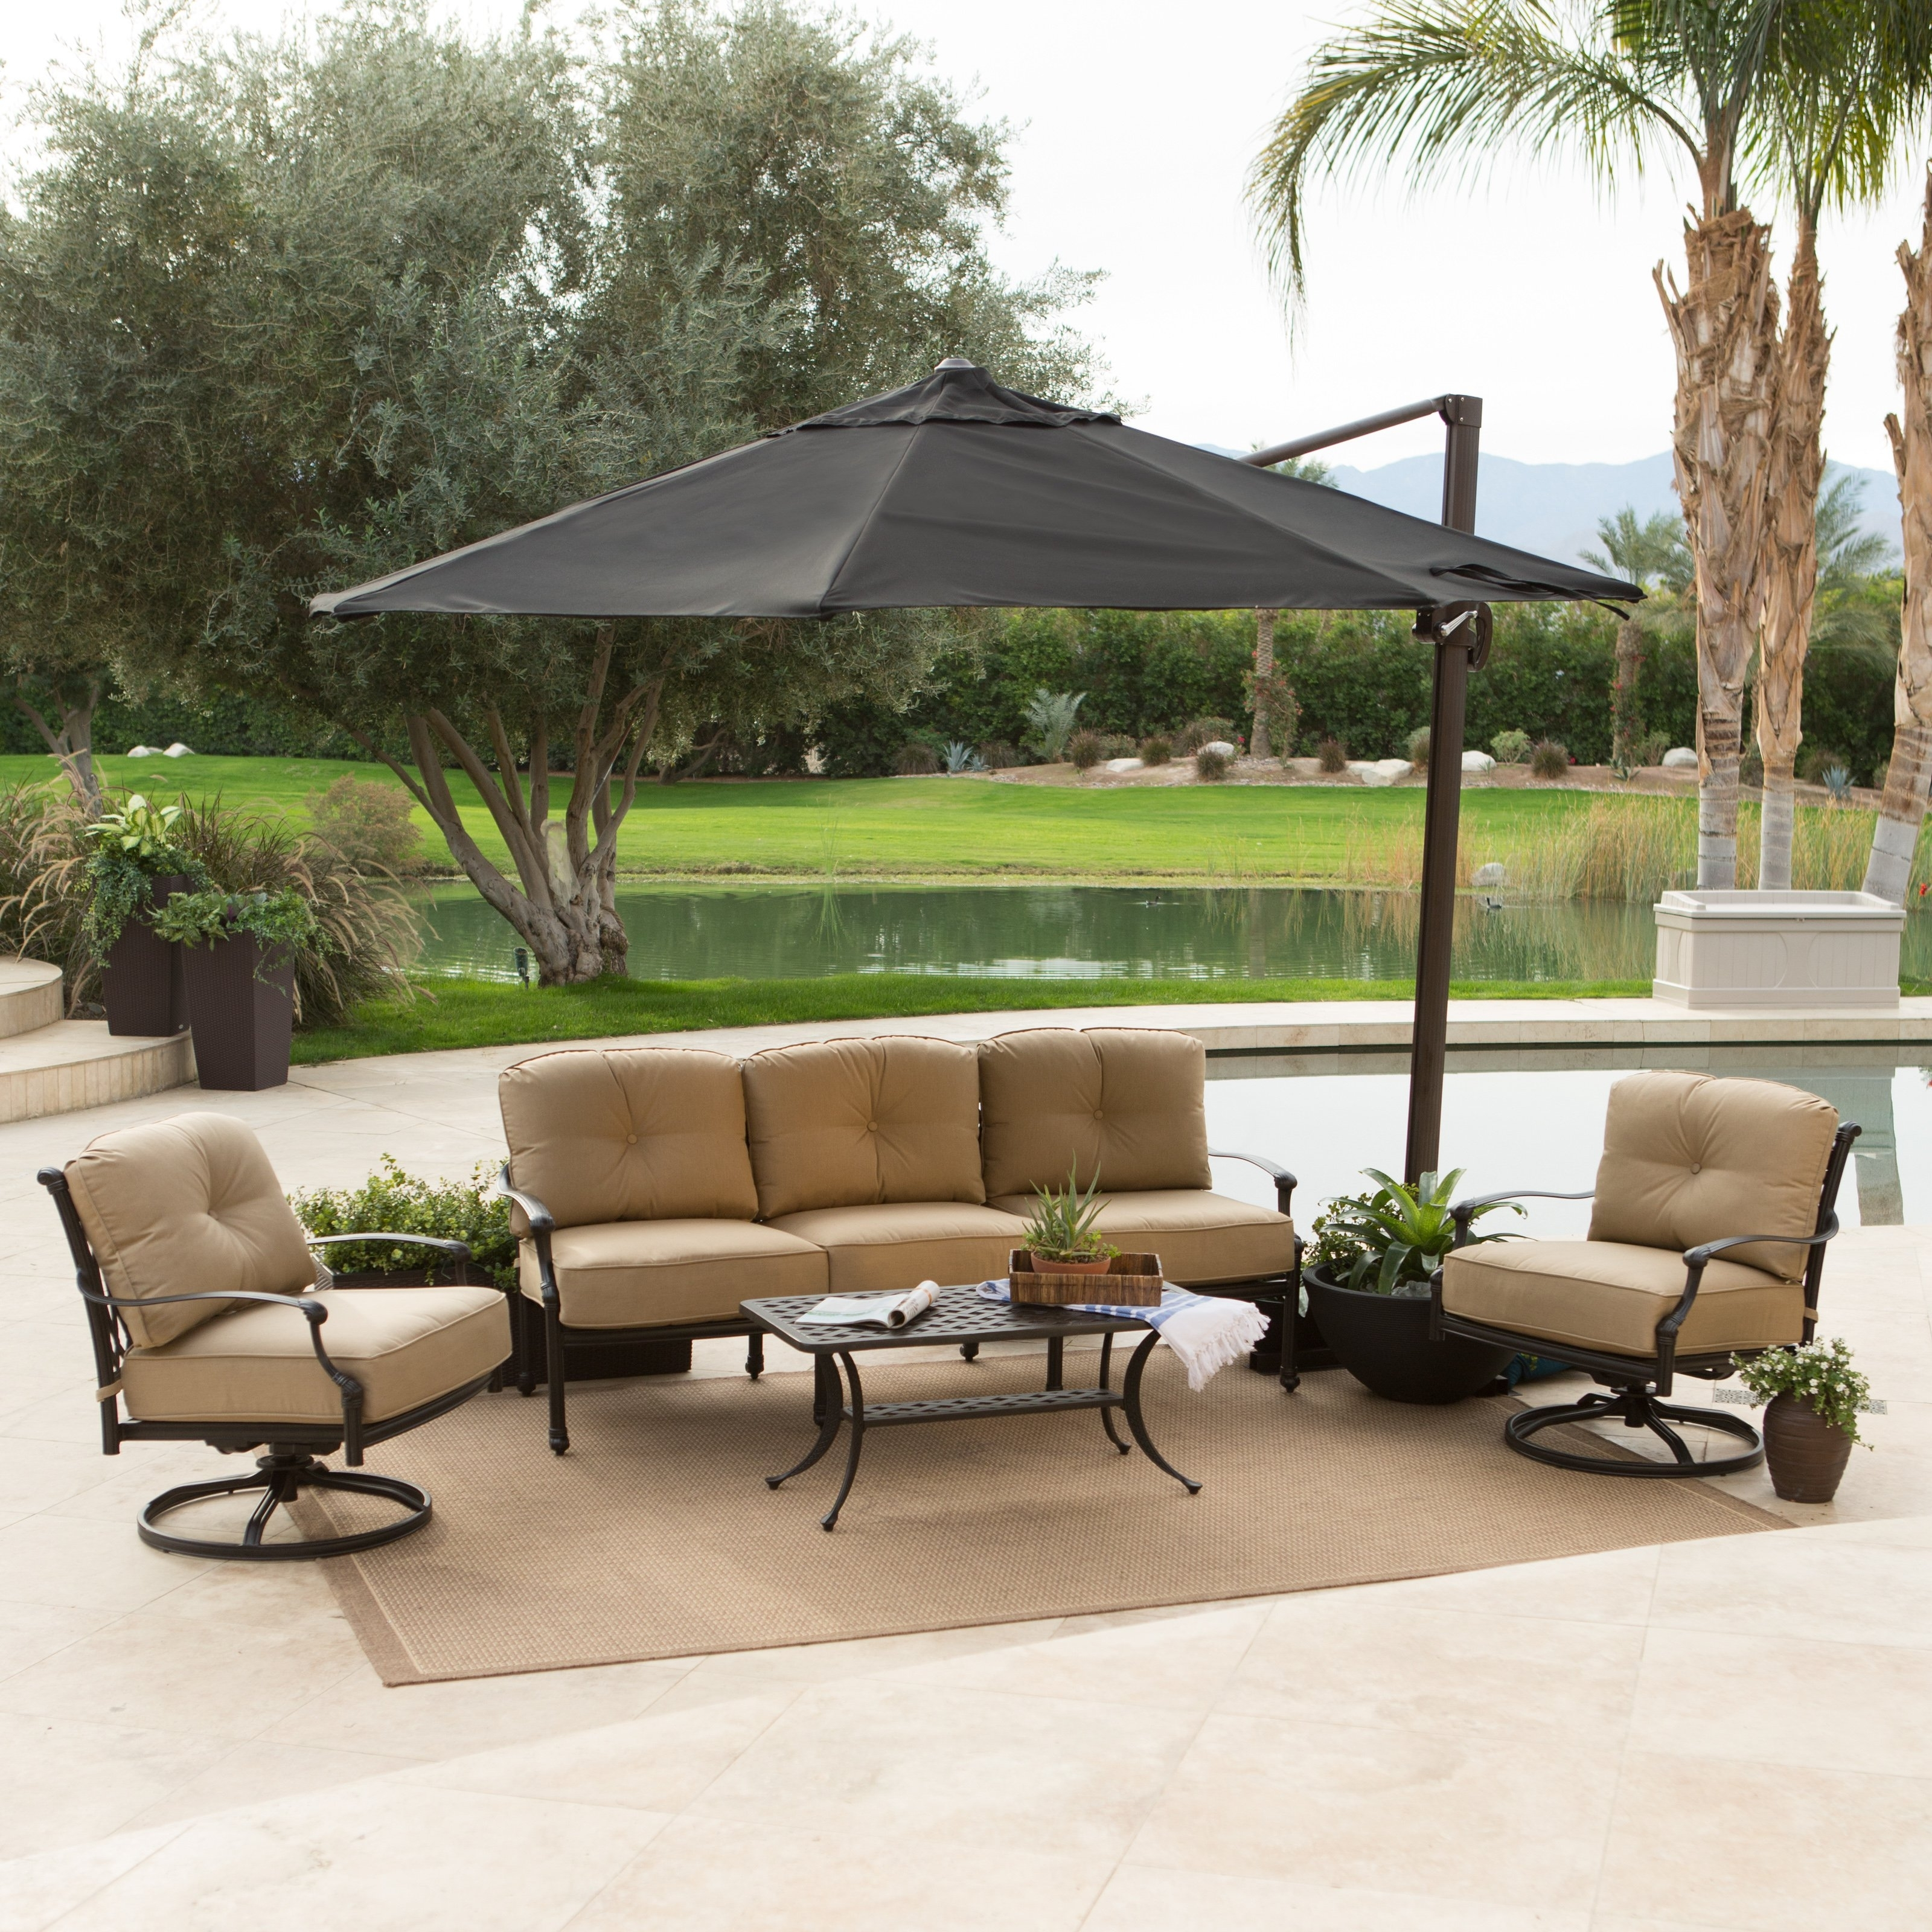 Popular Furniture: Coral Coast Offset Patio Umbrella Design With Brown Sofa With Regard To Coral Coast Offset Patio Umbrellas (View 16 of 20)